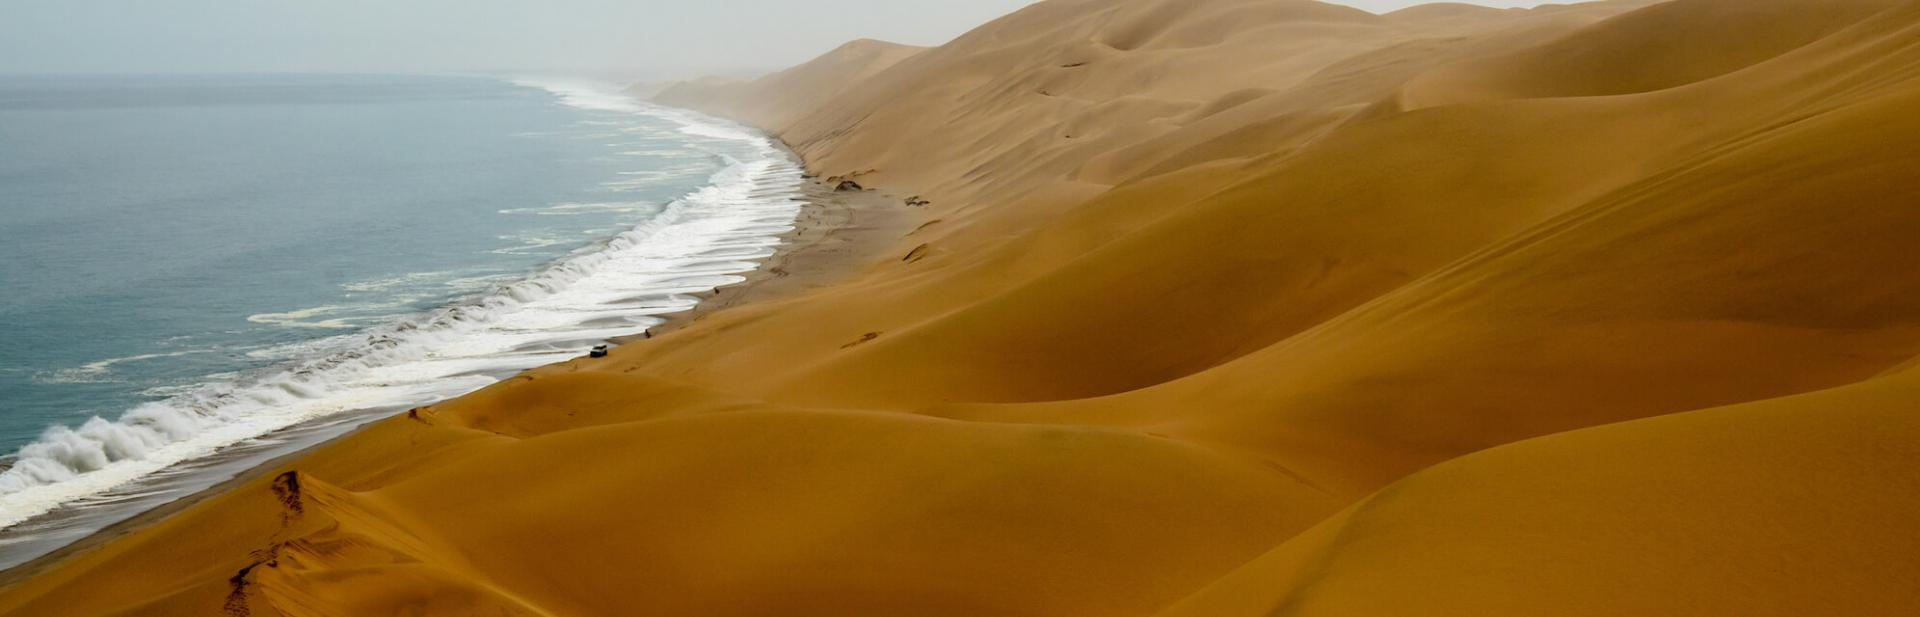 A view of desert dunes where they meet the ocean.